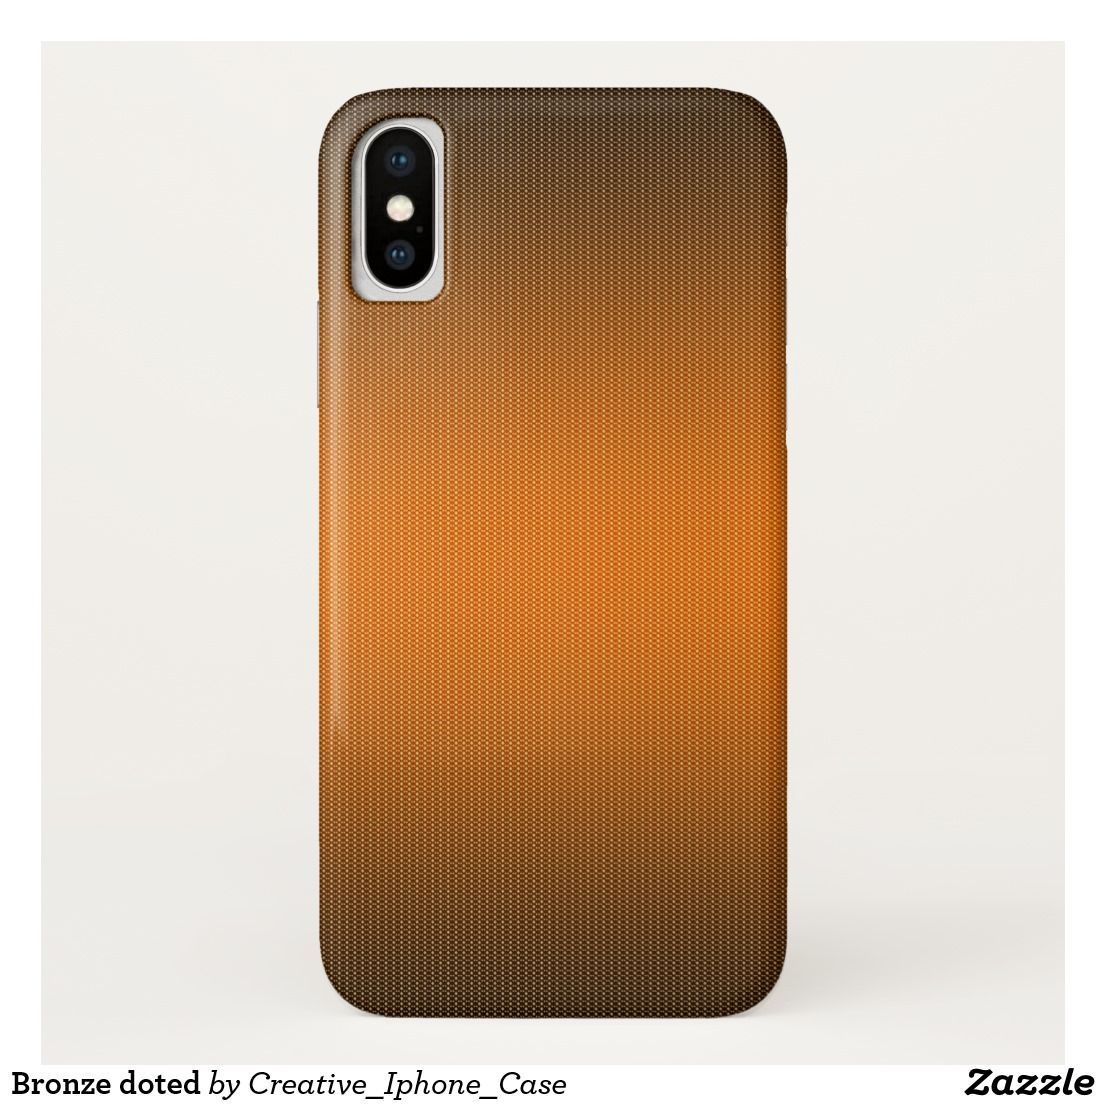 repair smartphone Bronze doted iPhone x case #smartphone #phone #mobile #samsung #apple #iphone #huawei #ipad #xiaomi #1+ #oneplus #android #ios #smartphones #tablet #technology #google #google_pixel #smartphone_case #Apple_accessories #Huawei_accessories #Samsung_accessories #Nokia_accessories #xiaomi_accessories #oneplus_accessories #smartphone_shop #smartphone_repair #smartphone_accessories #Smartphone_Cover #smartphone_review